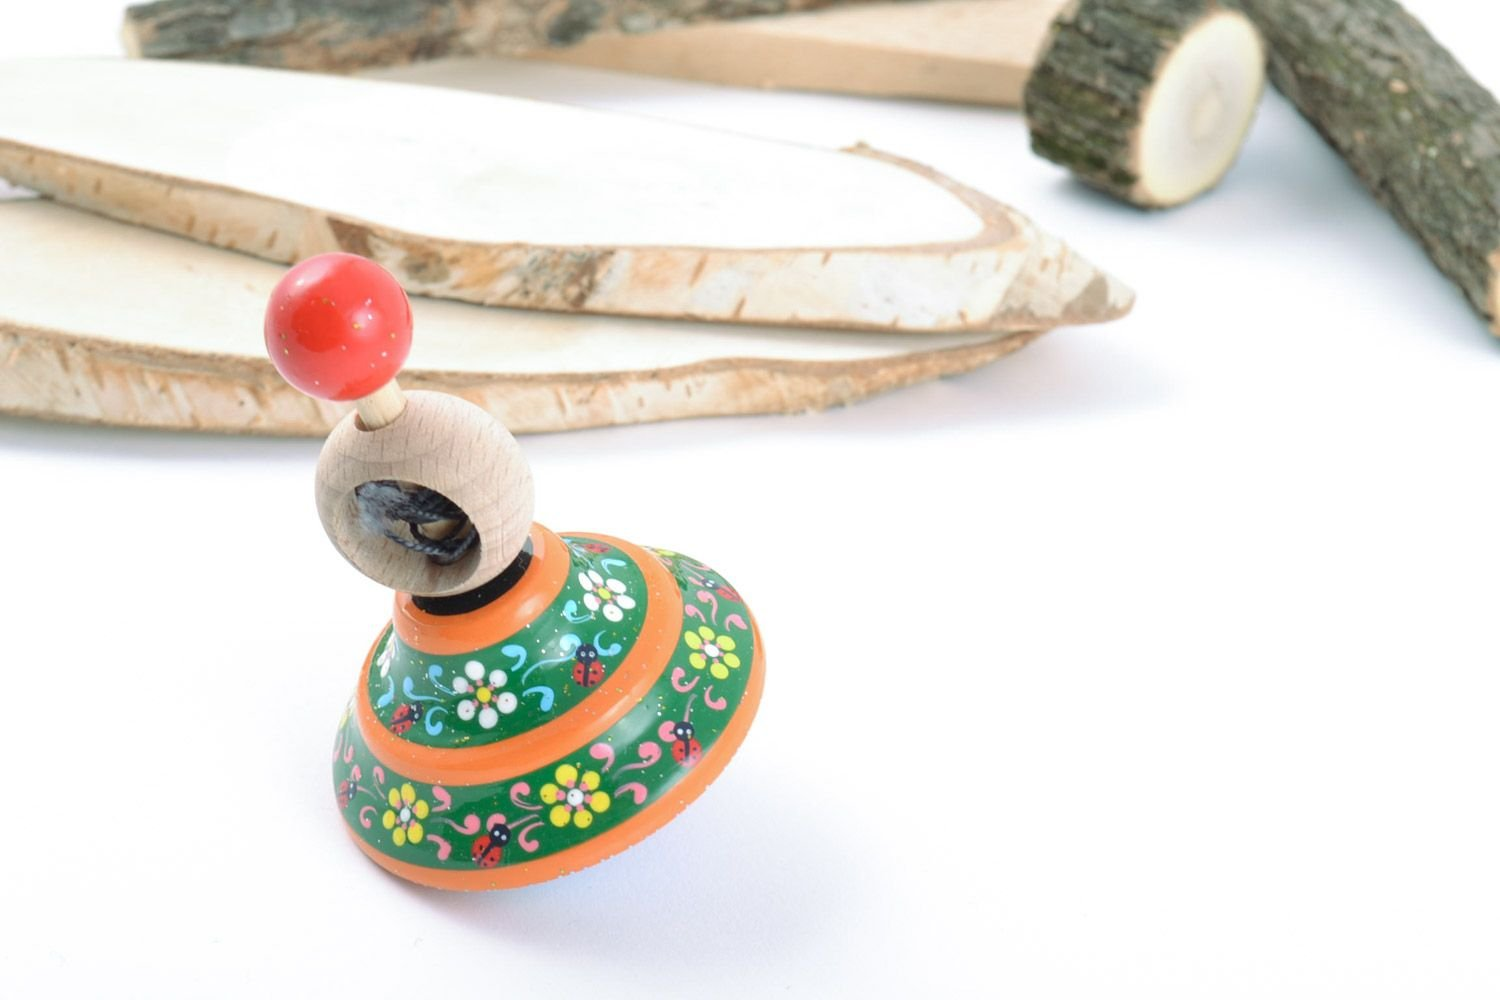 Homemade Wooden Ornamented Toy Spinning Top Painted With Eco Dyes For Children